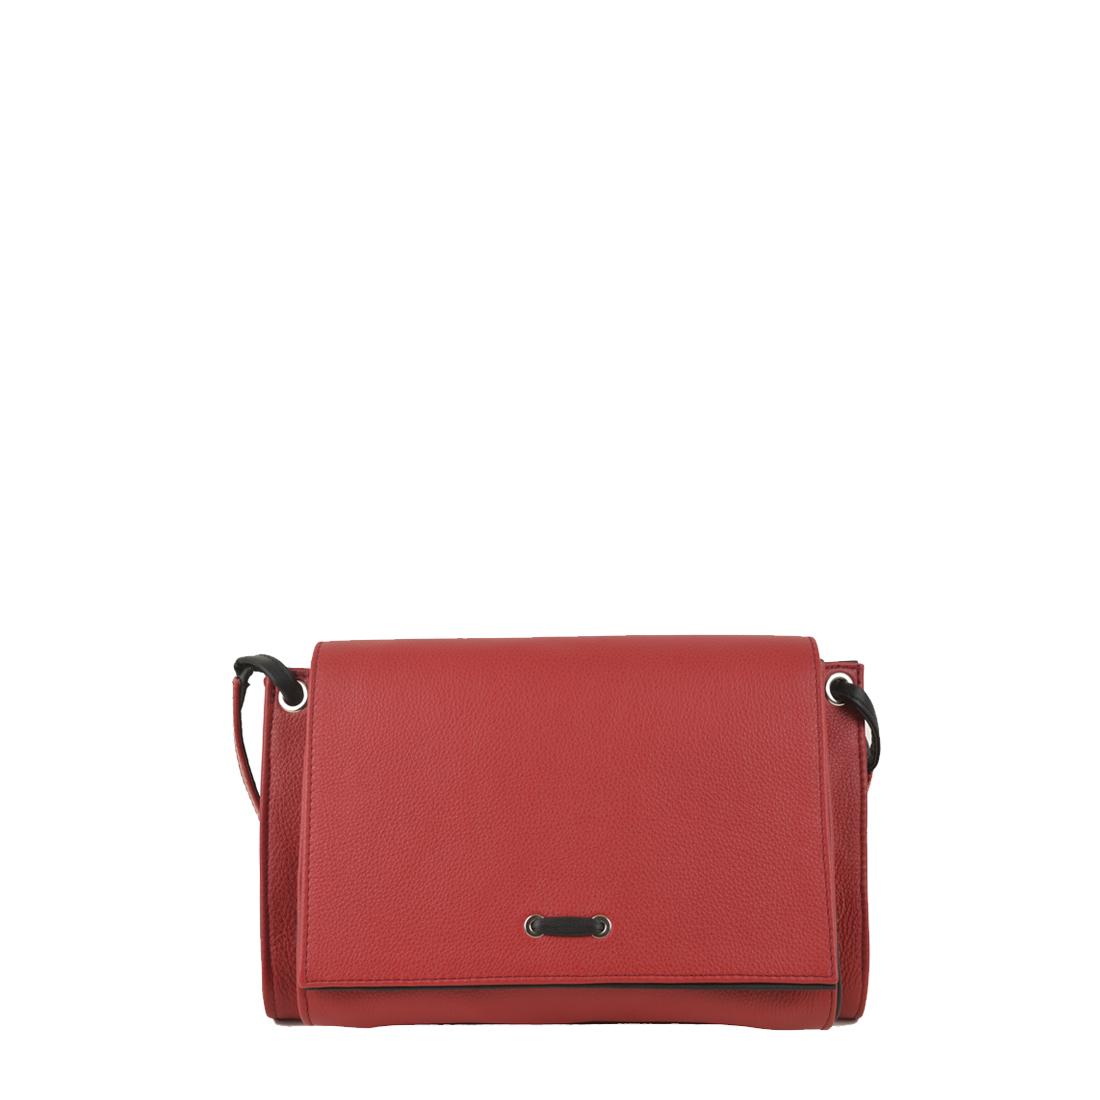 Isobel Red / Black Leather Across Body Bag